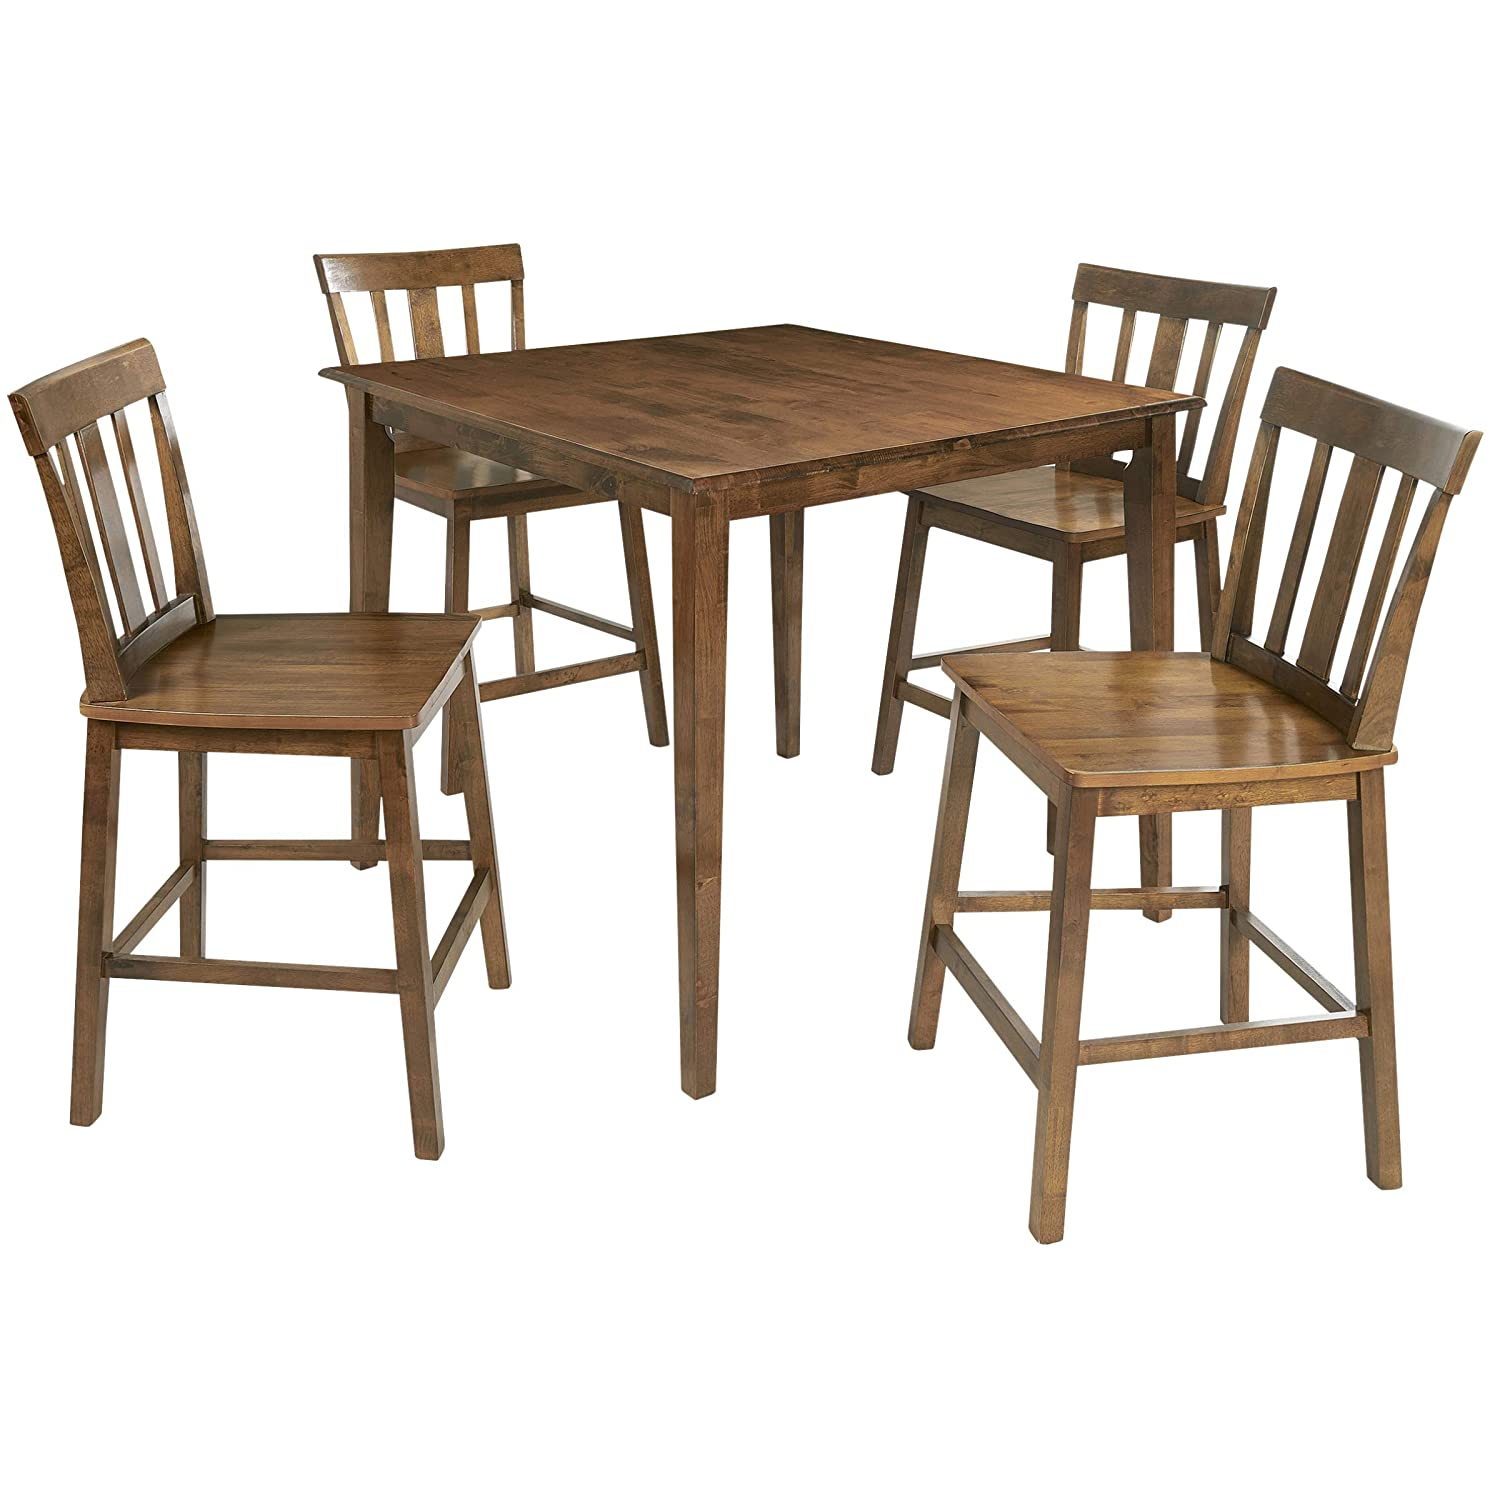 Amazoncom Mainstays 5 Piece Mission Style Dining Set Cherry